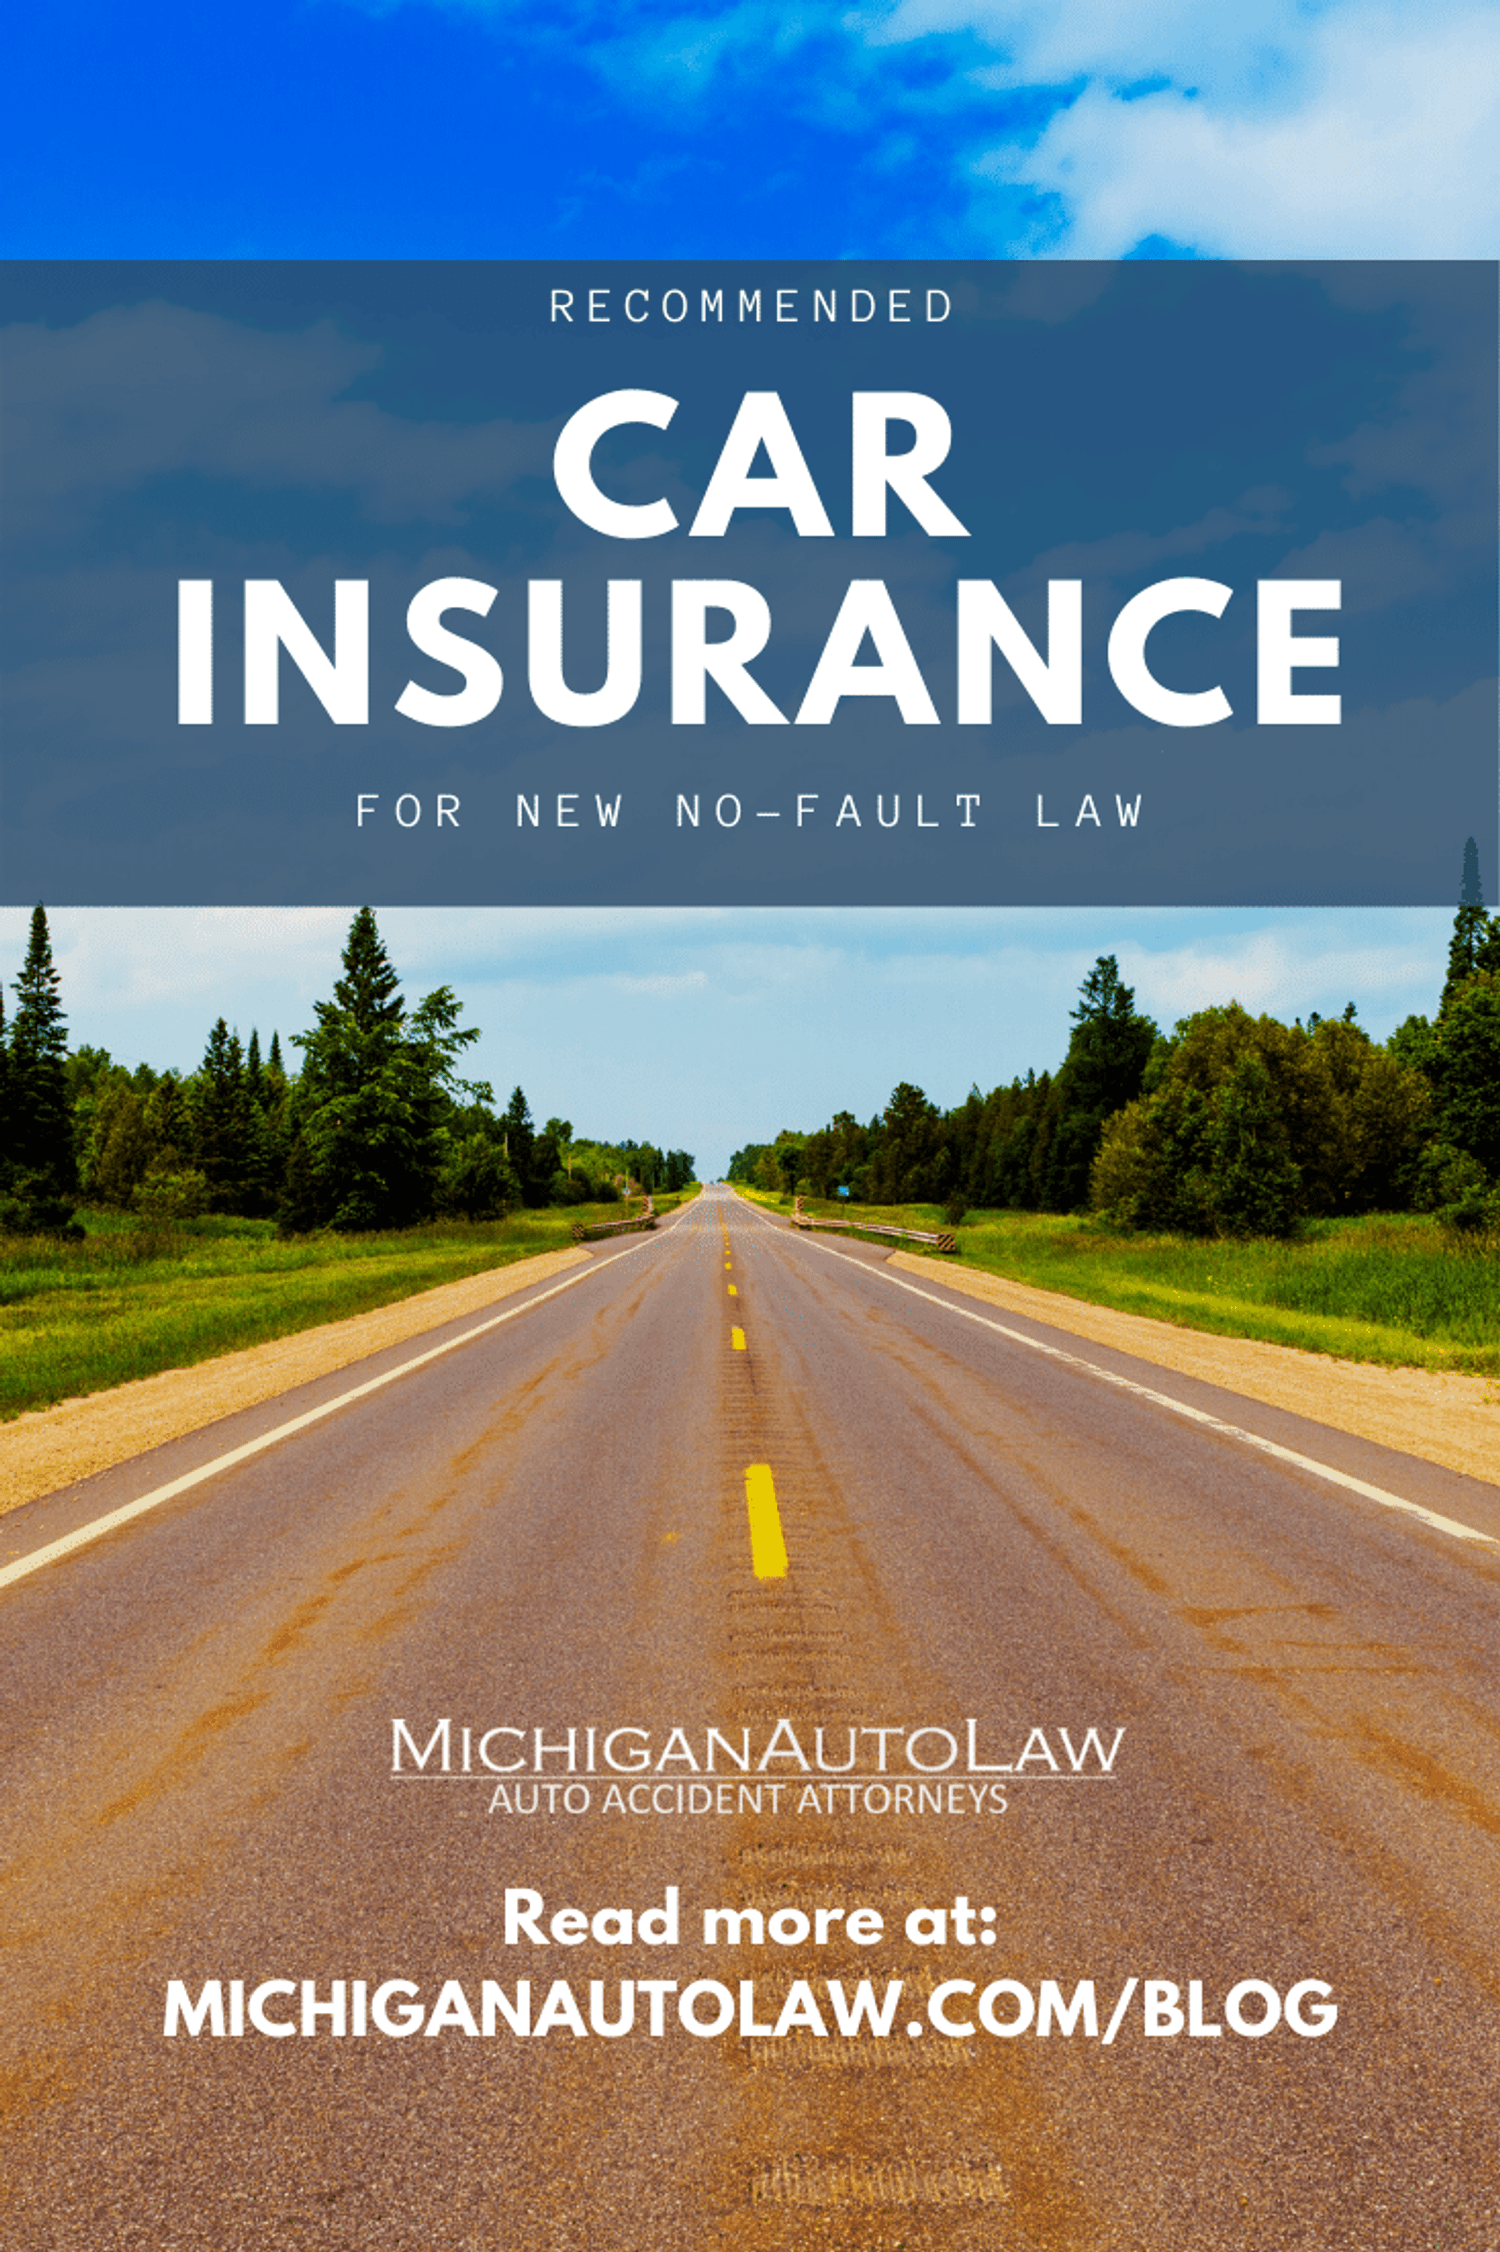 Recommended Car Insurance Coverage For New No-Fault Law